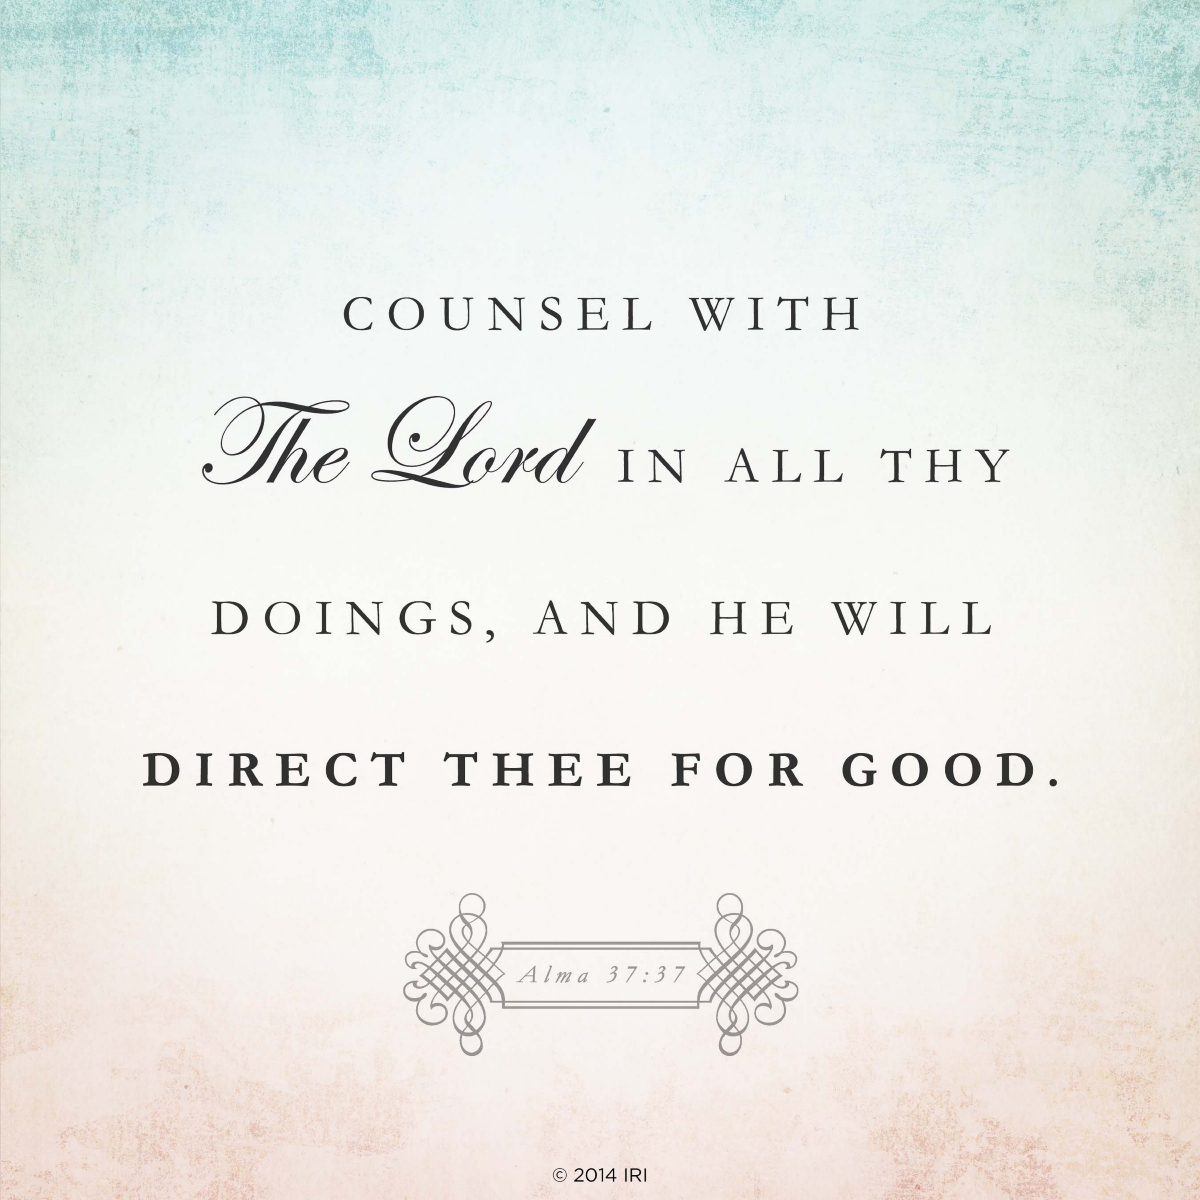 Inspirational Book Of Mormon Quotes: Counsel With The Lord